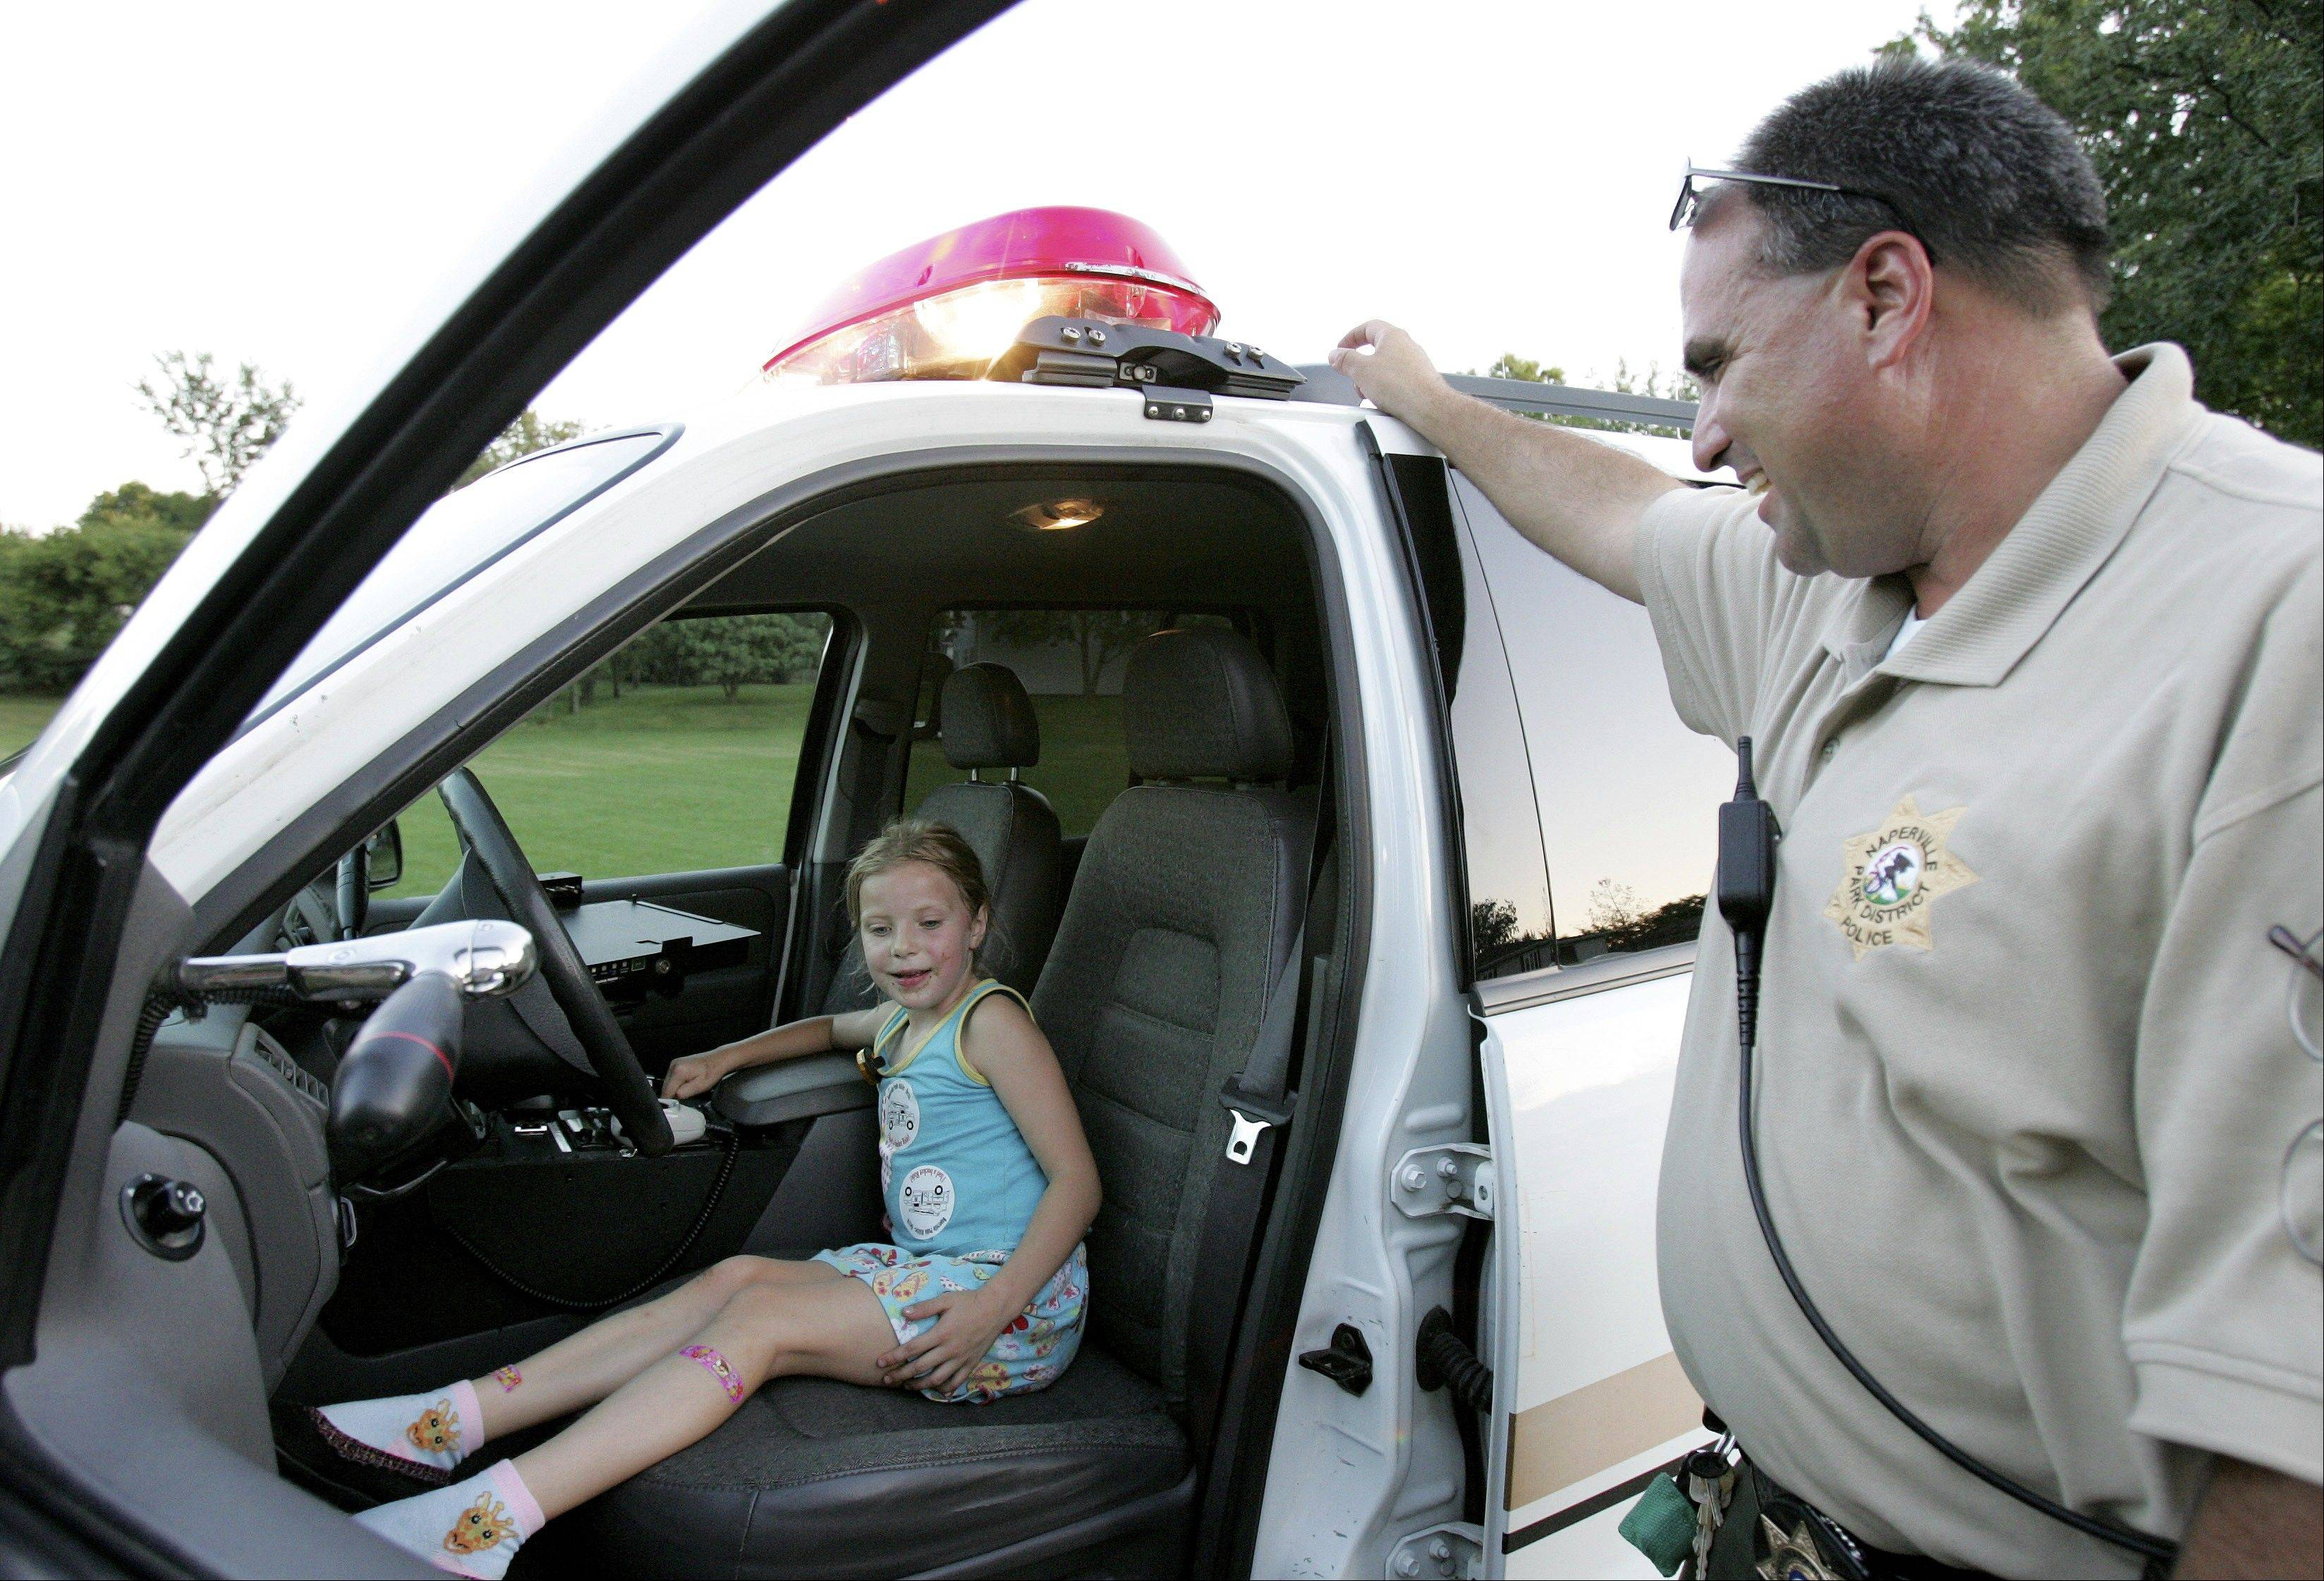 Residents in many DuPage County communities will get a chance to interact with police officers and firefighters Tuesday, Aug. 7, during a wide range of National Night Out activities.